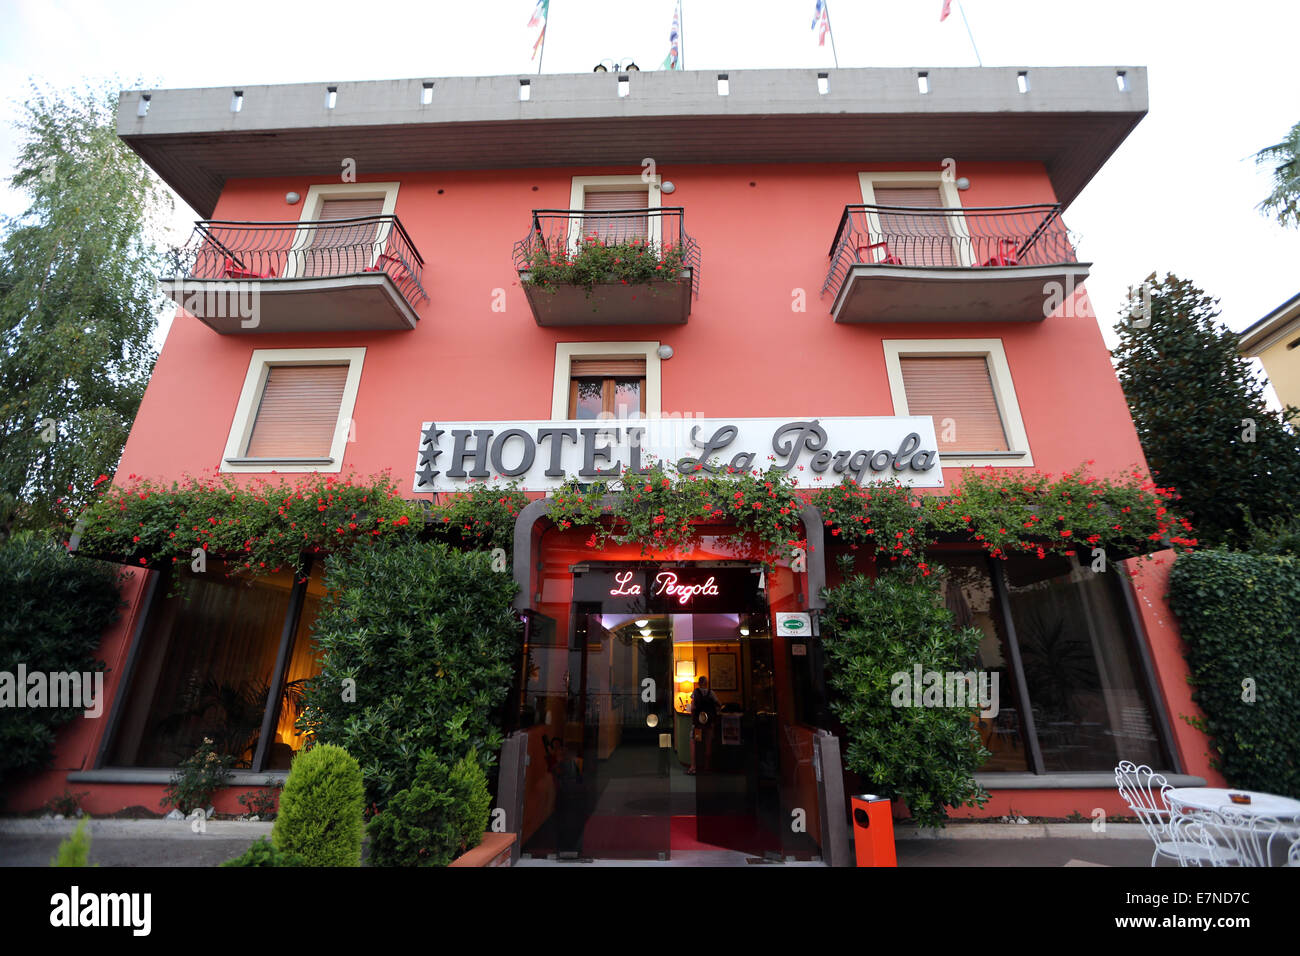 Hotel La Pegola, Barga, Tuscany, Italy, holiday, weekend break, weekend retreat, bed and breakfast - Stock Image